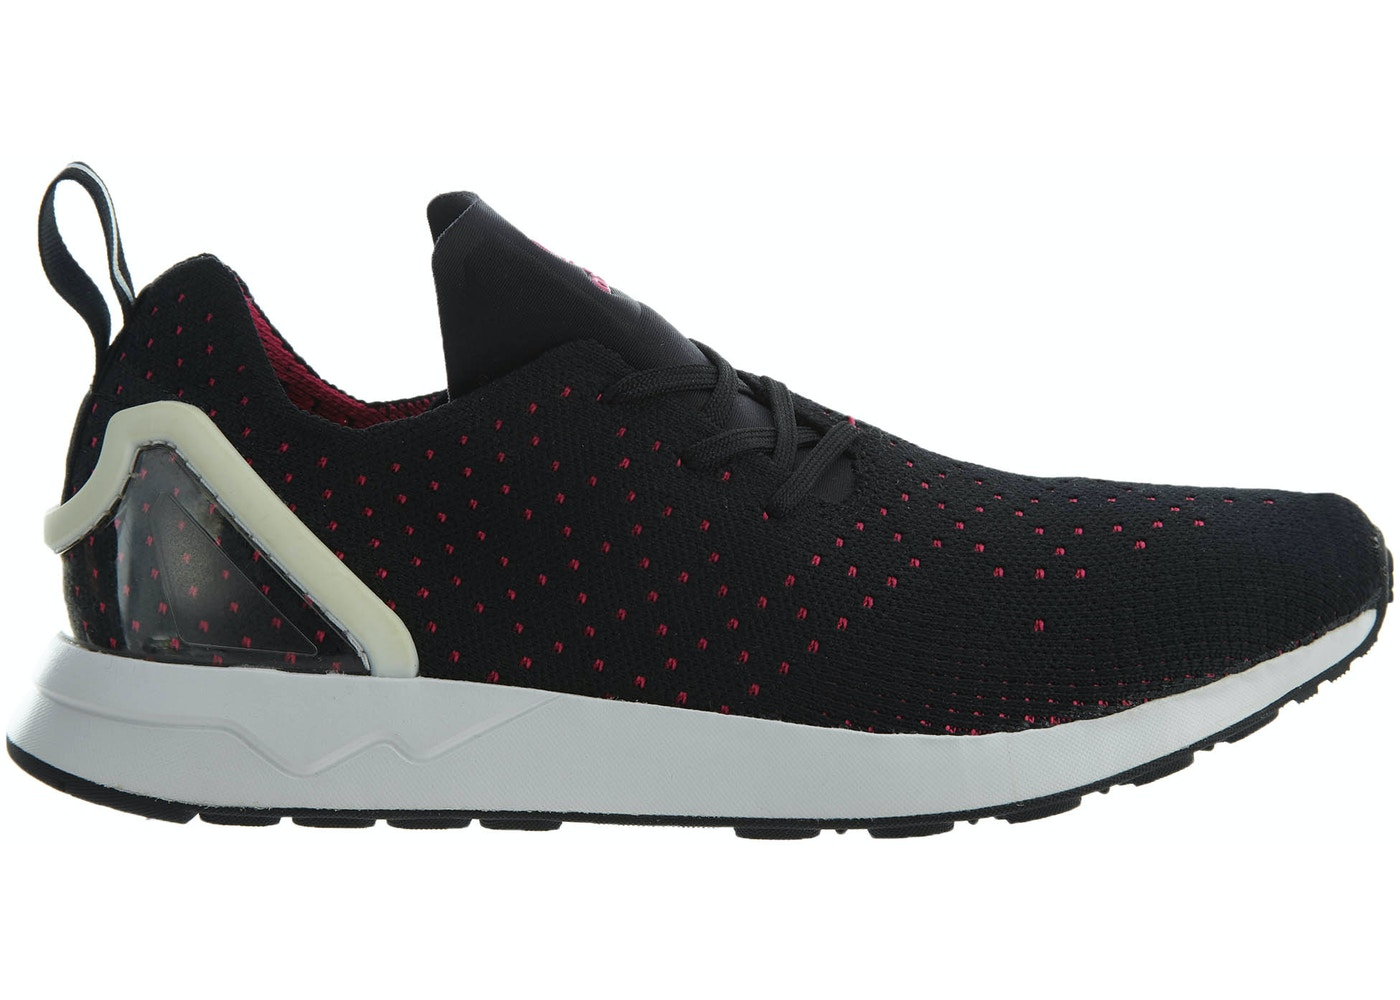 check out 89e3d 62ea1 adidas Zx Flux Adv Asym Pk Black Shock Pink-White